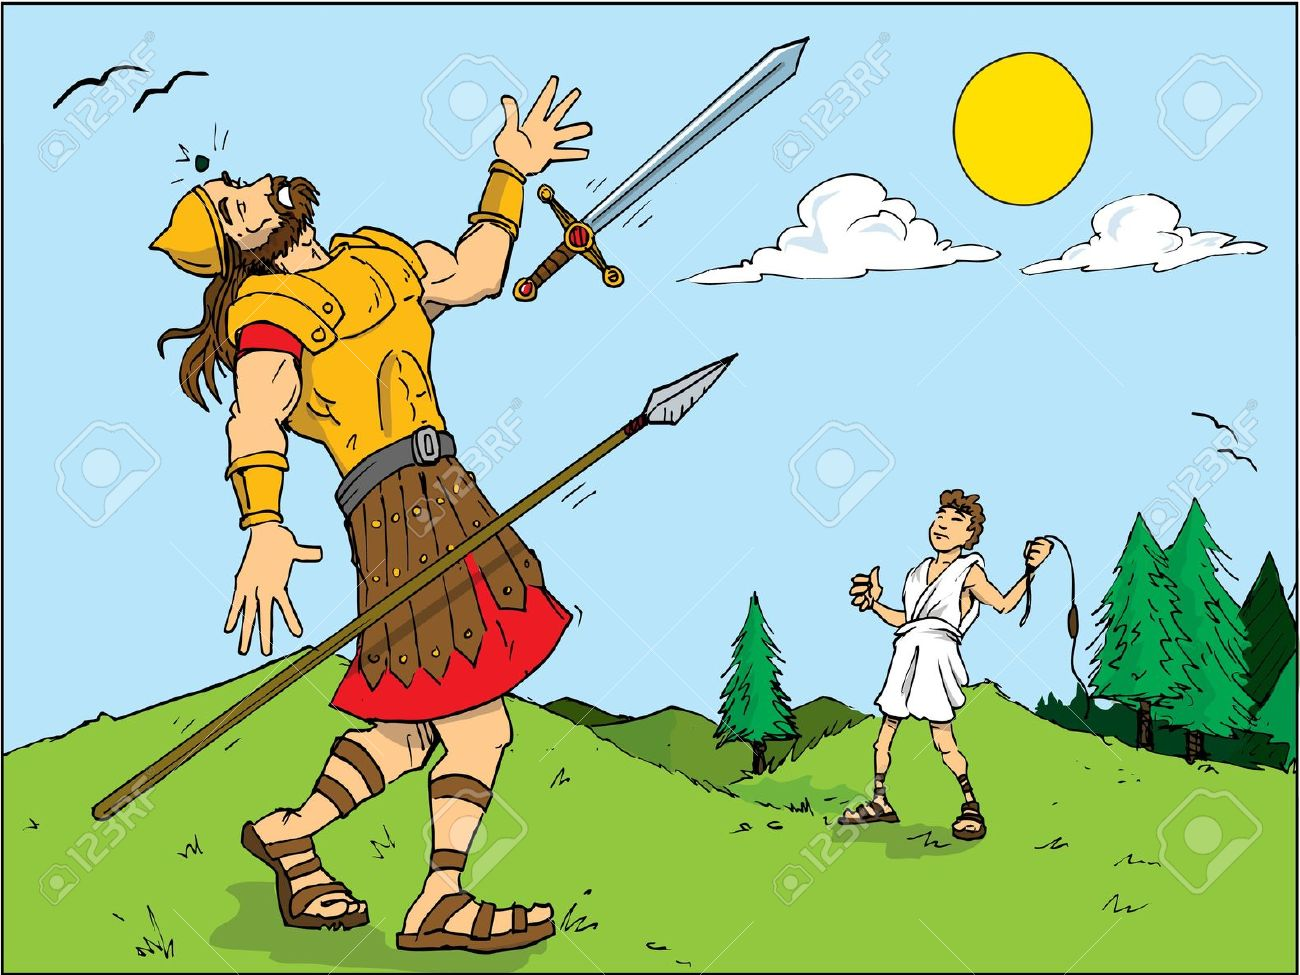 Bible character david clipart jpg stock Cartoon Of Goliath Defeated By David. Bible Story Royalty Free ... jpg stock